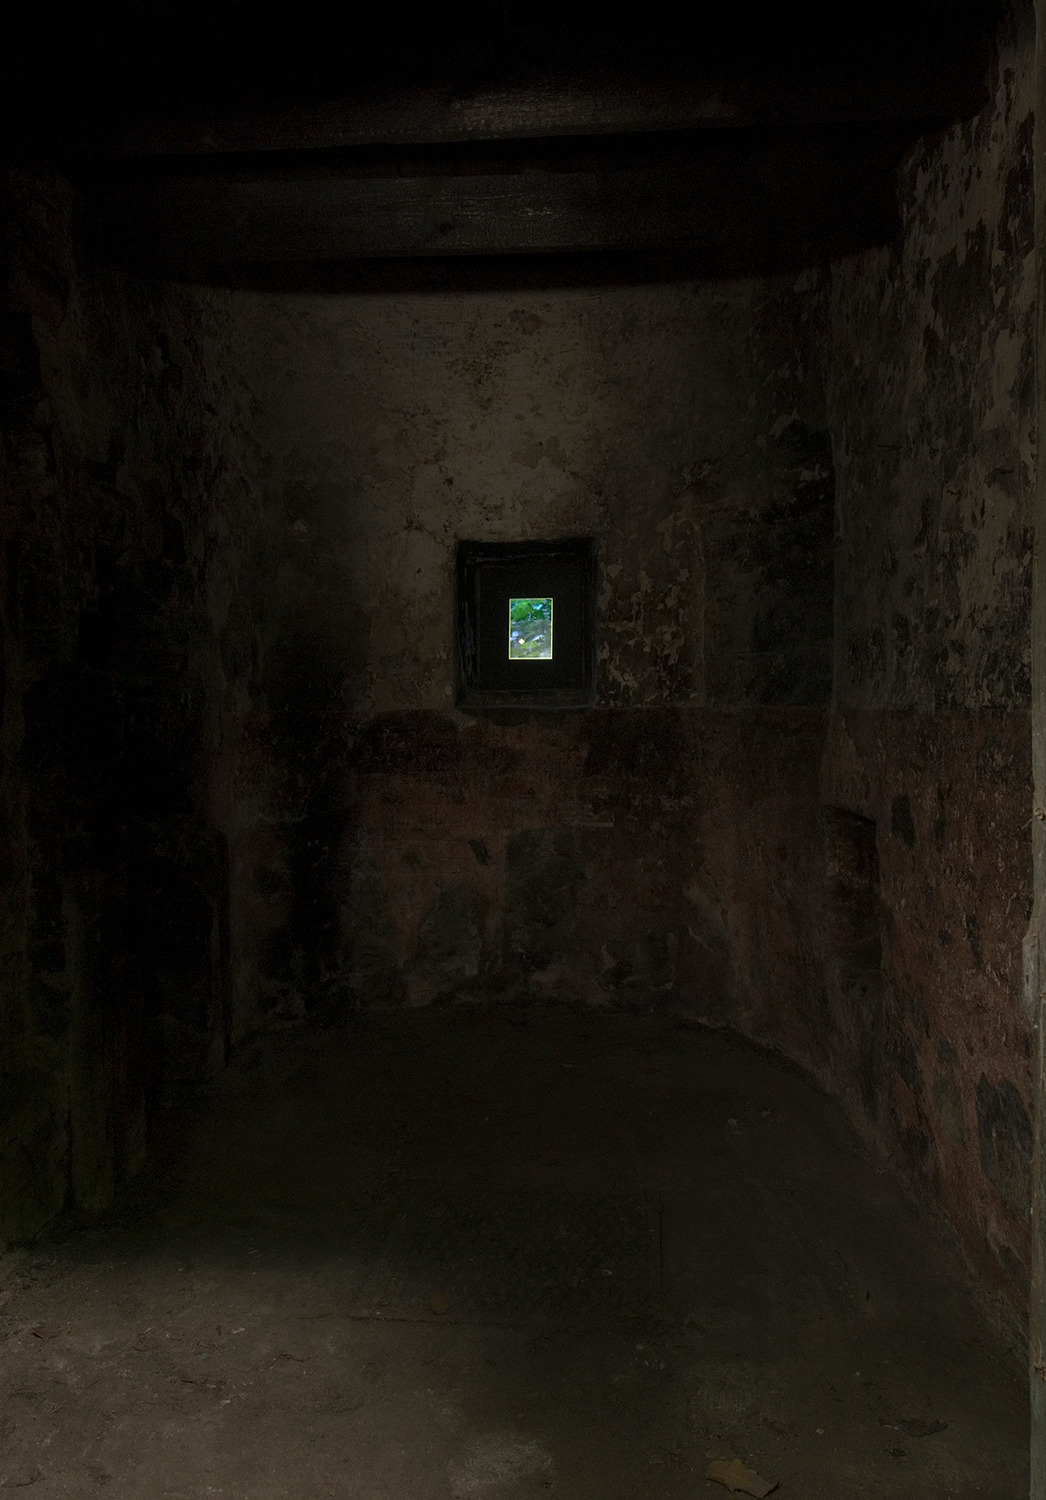 Richard Wright, No title, 2007, Etched handmade fused glass, 32 x 24 cm, Installation view, St Georges Well, 2007 (Commissioned for 'Jardins Publics', Edinburgh International Festival)